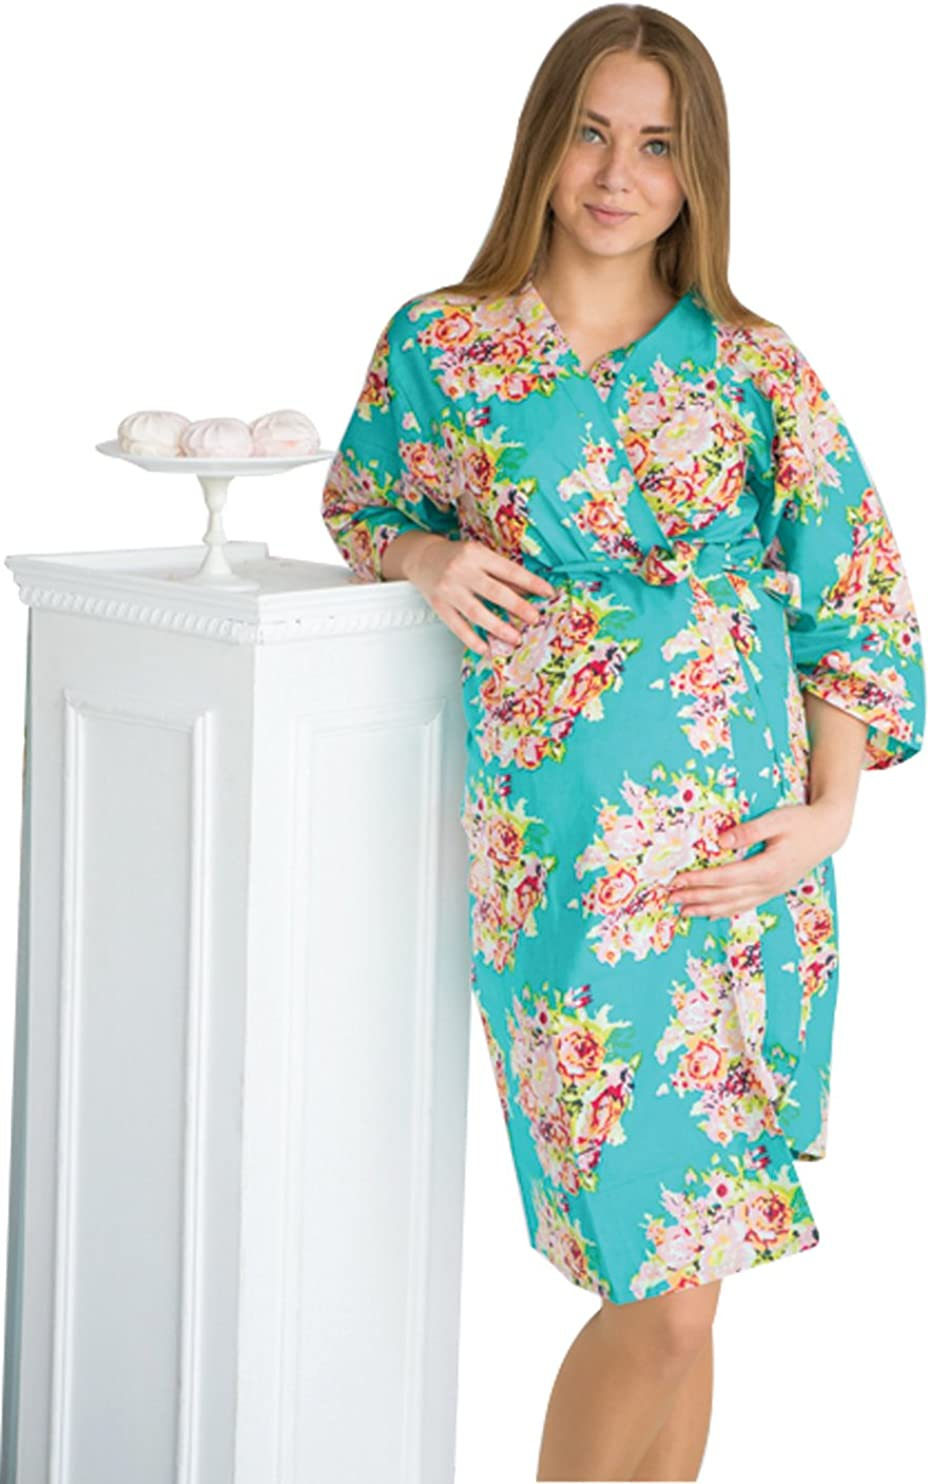 Teal Dots Maternity Robe Hospital Gown Delivery Robe labor gown delivery gown,nursing mothers,to be moms,Pregnancy Robe